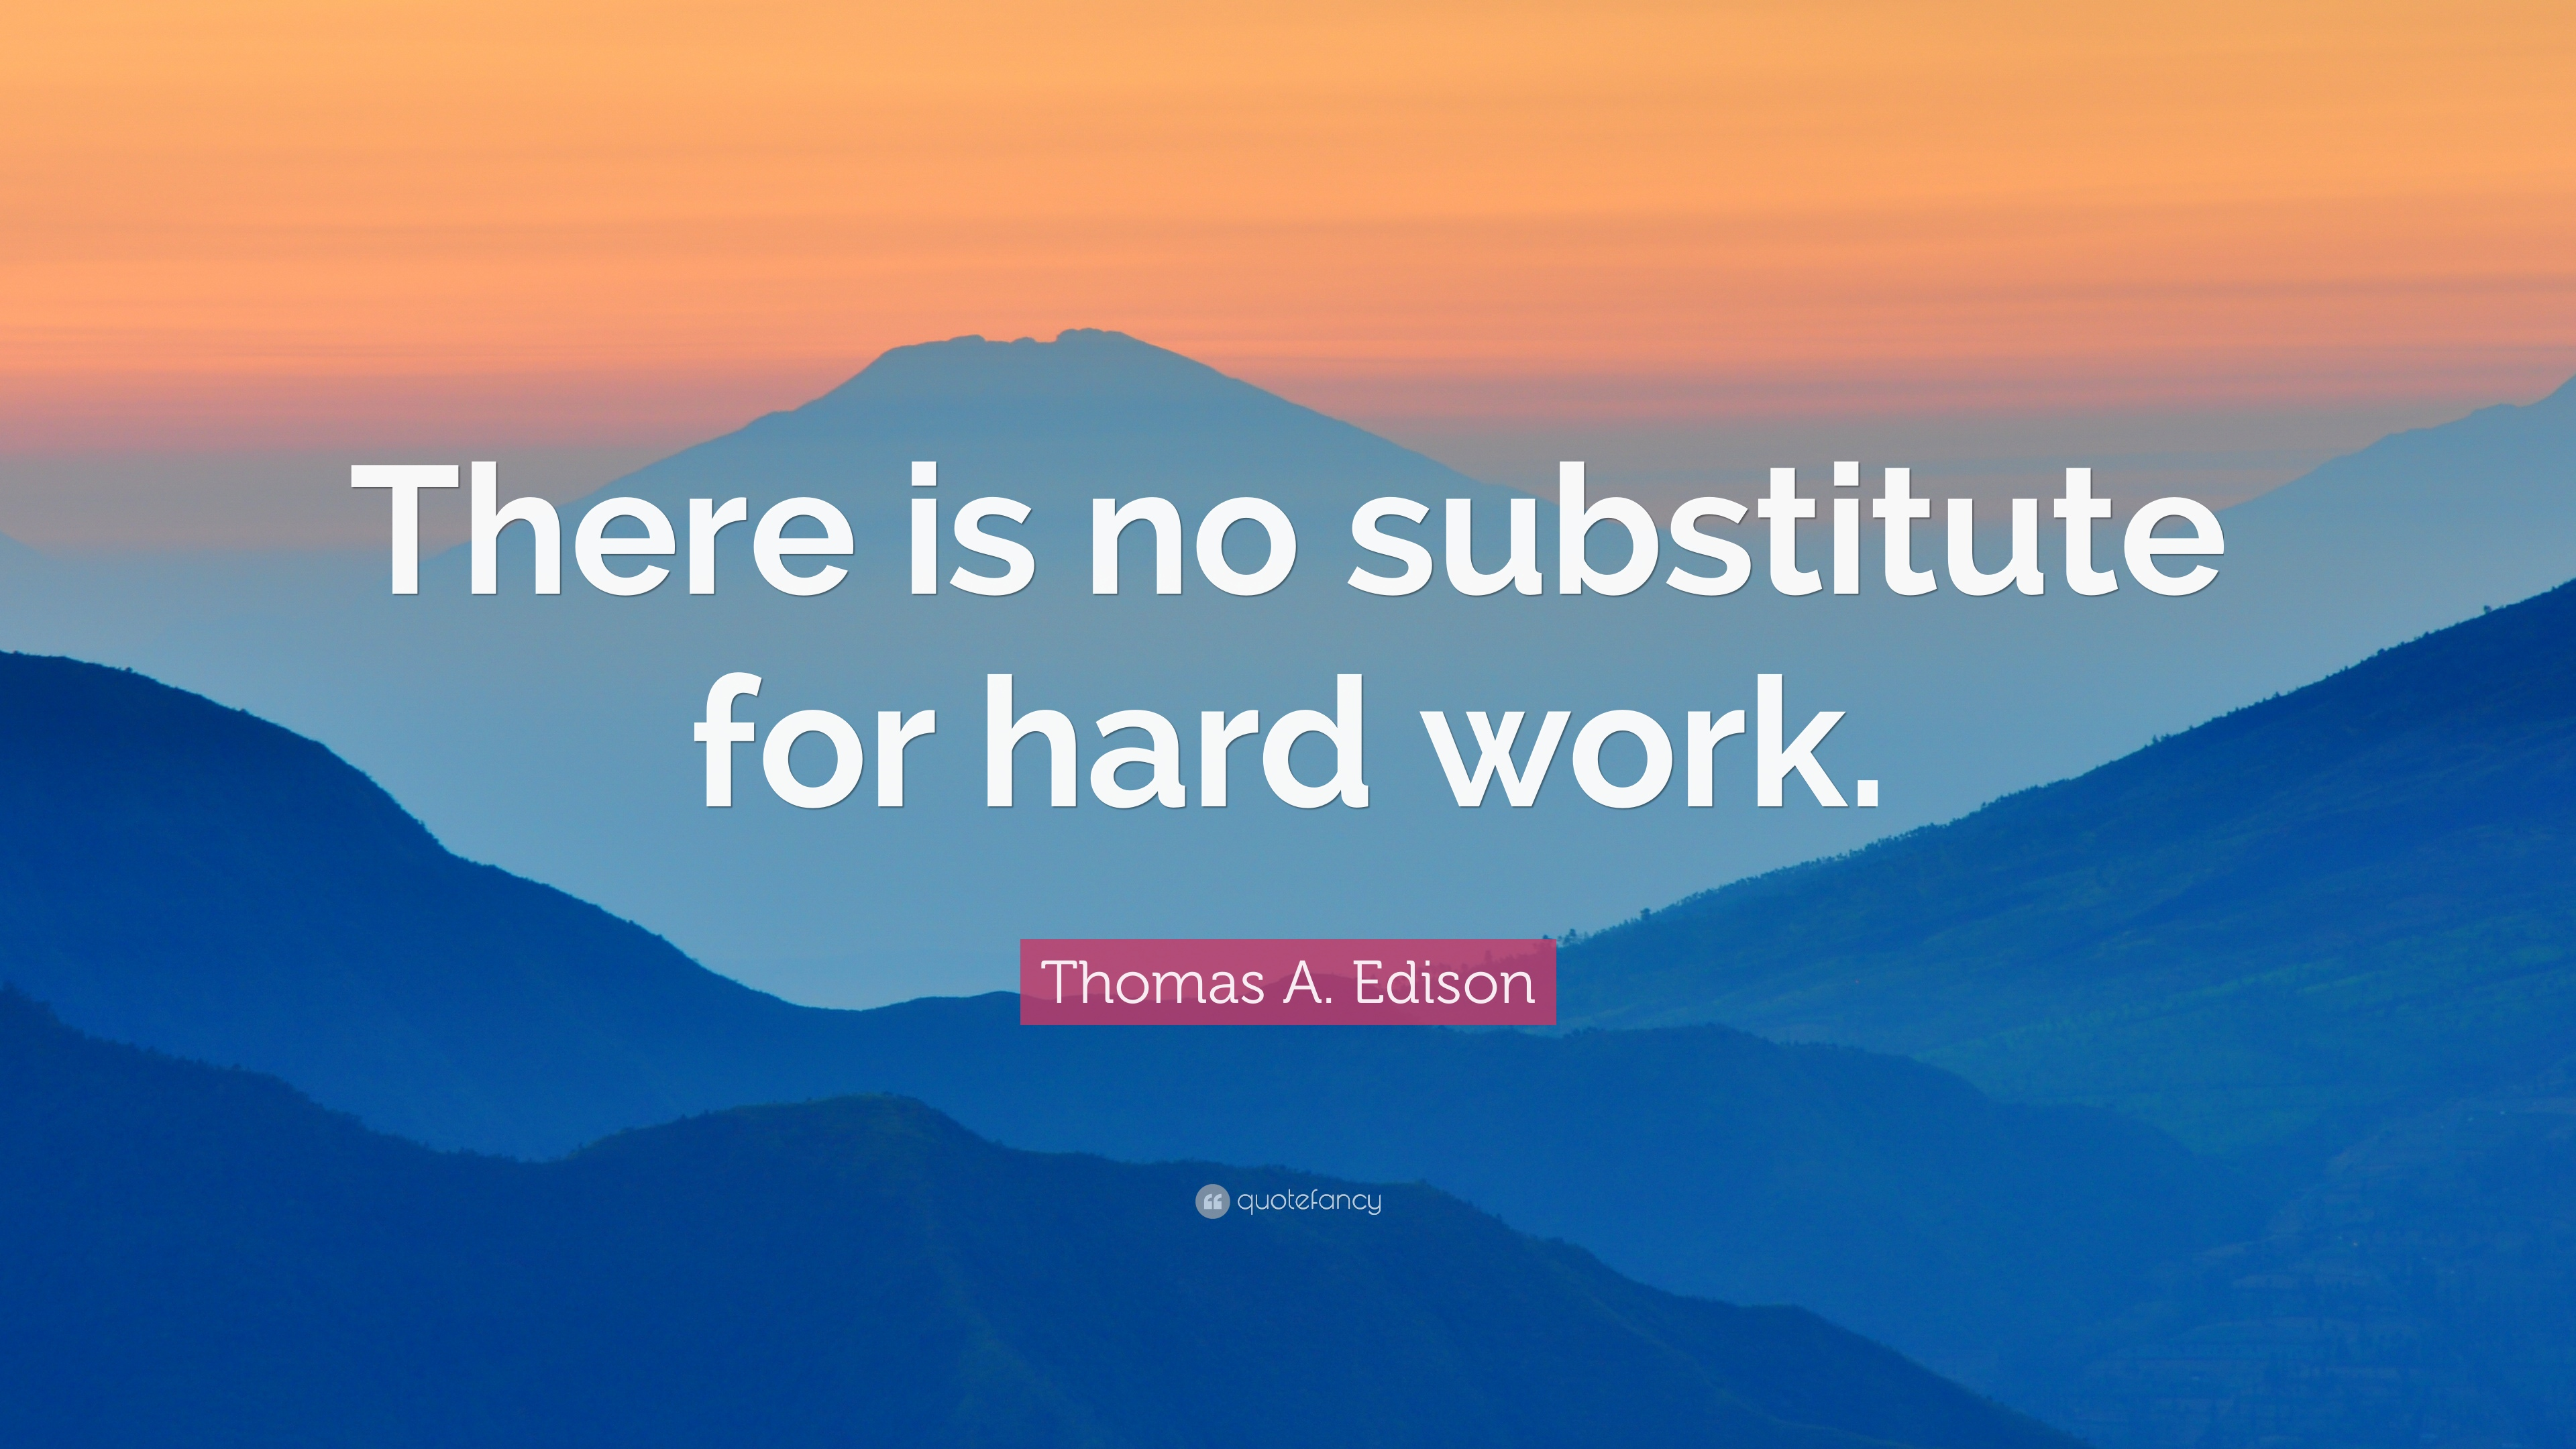 Work Hard Inspirational Quotes Wallpaper Thomas A Edison Quote There Is No Substitute For Hard